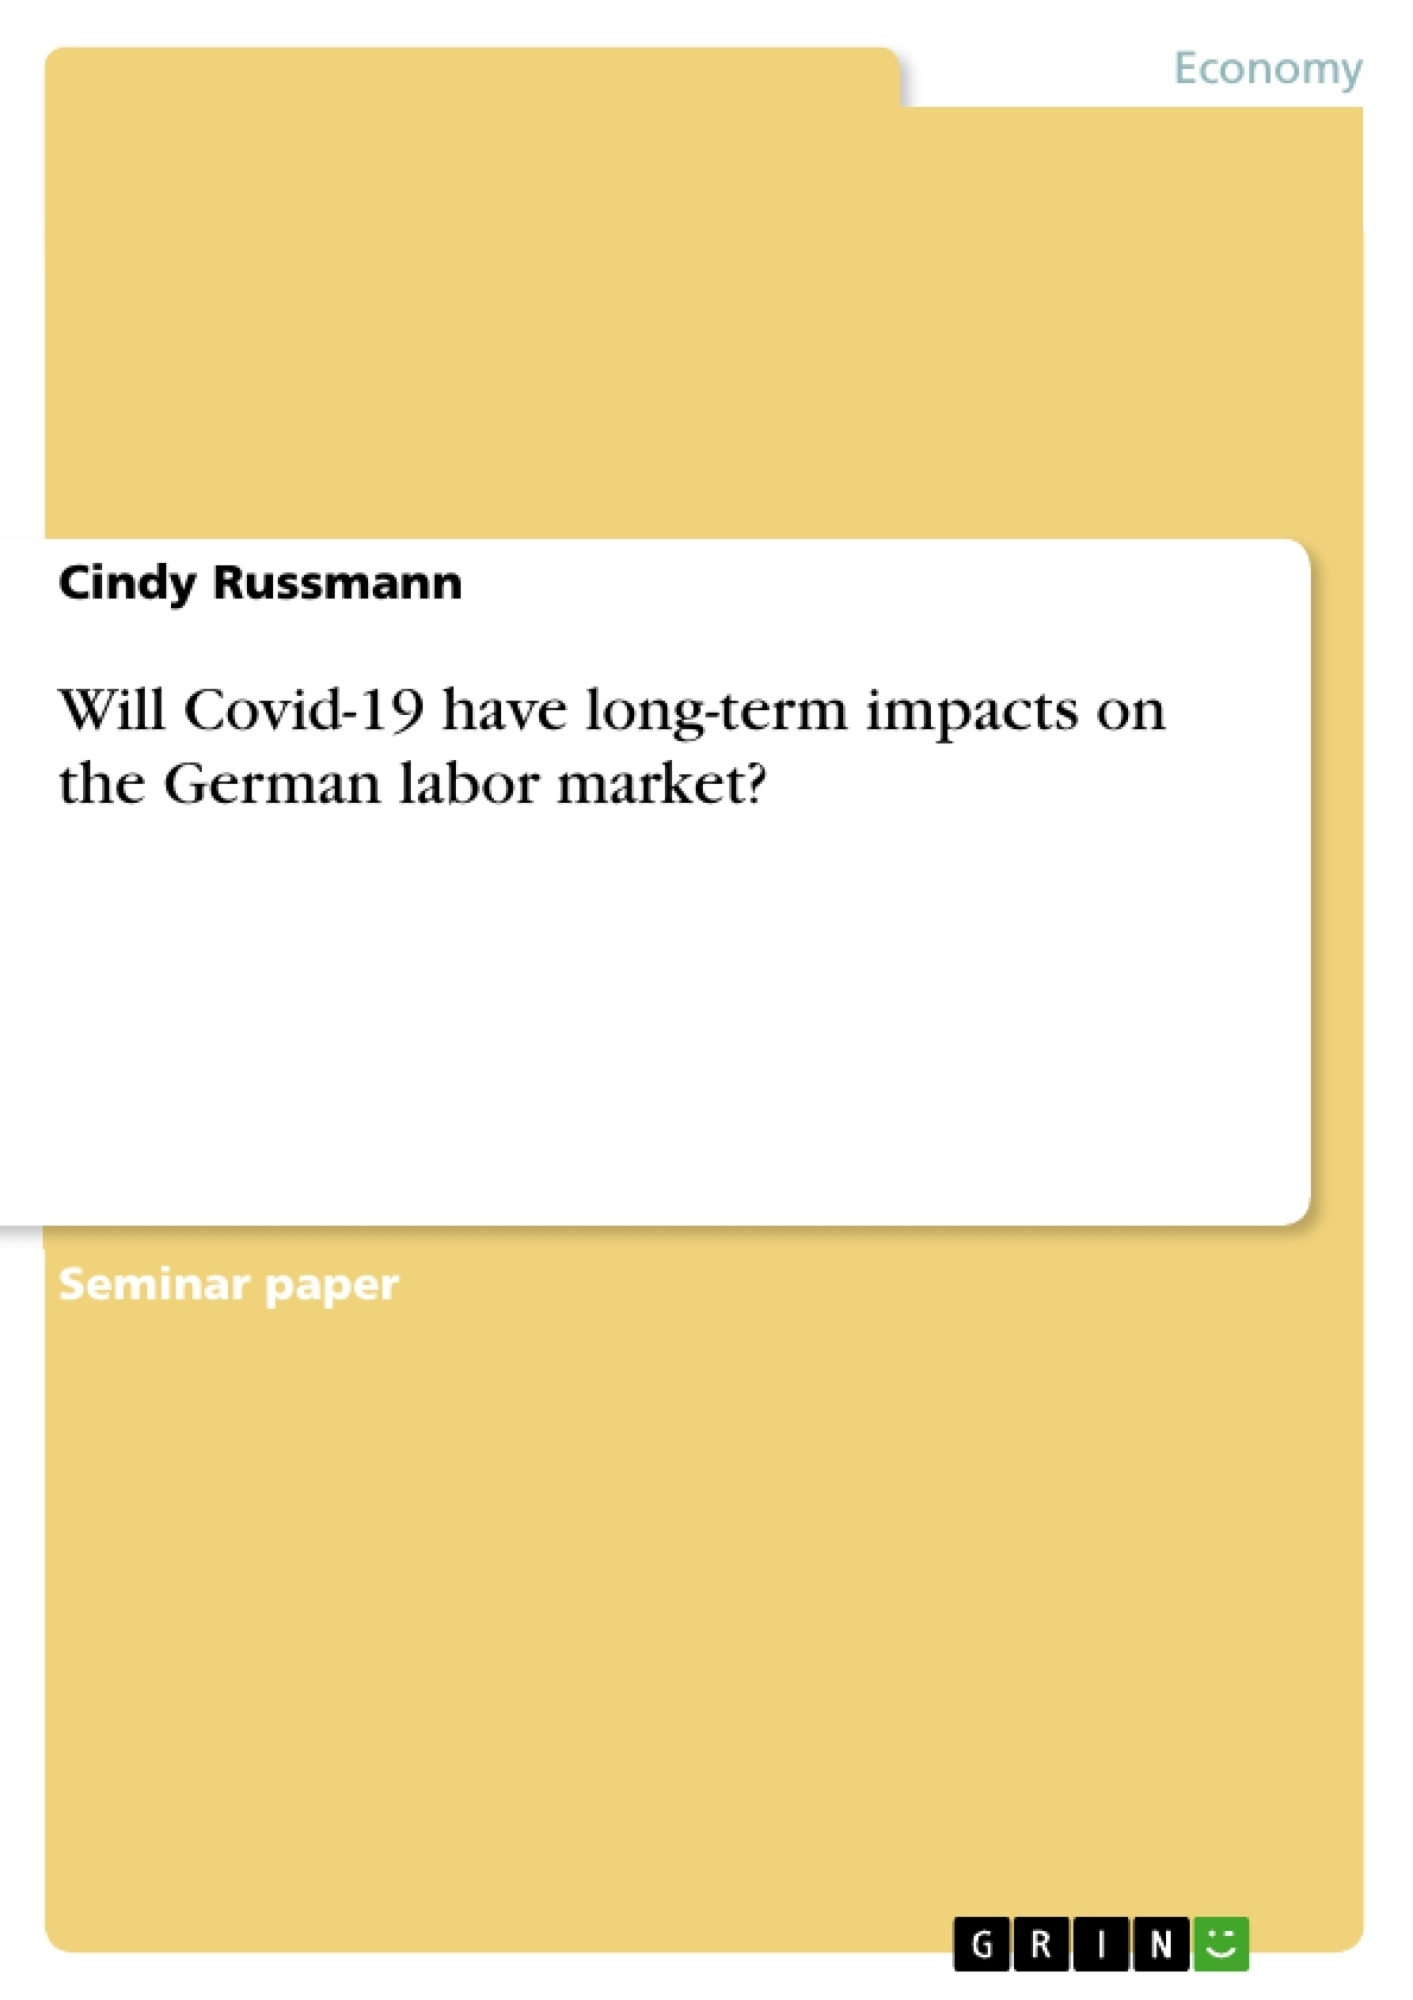 Title: Will Covid-19 have long-term impacts on the German labor market?